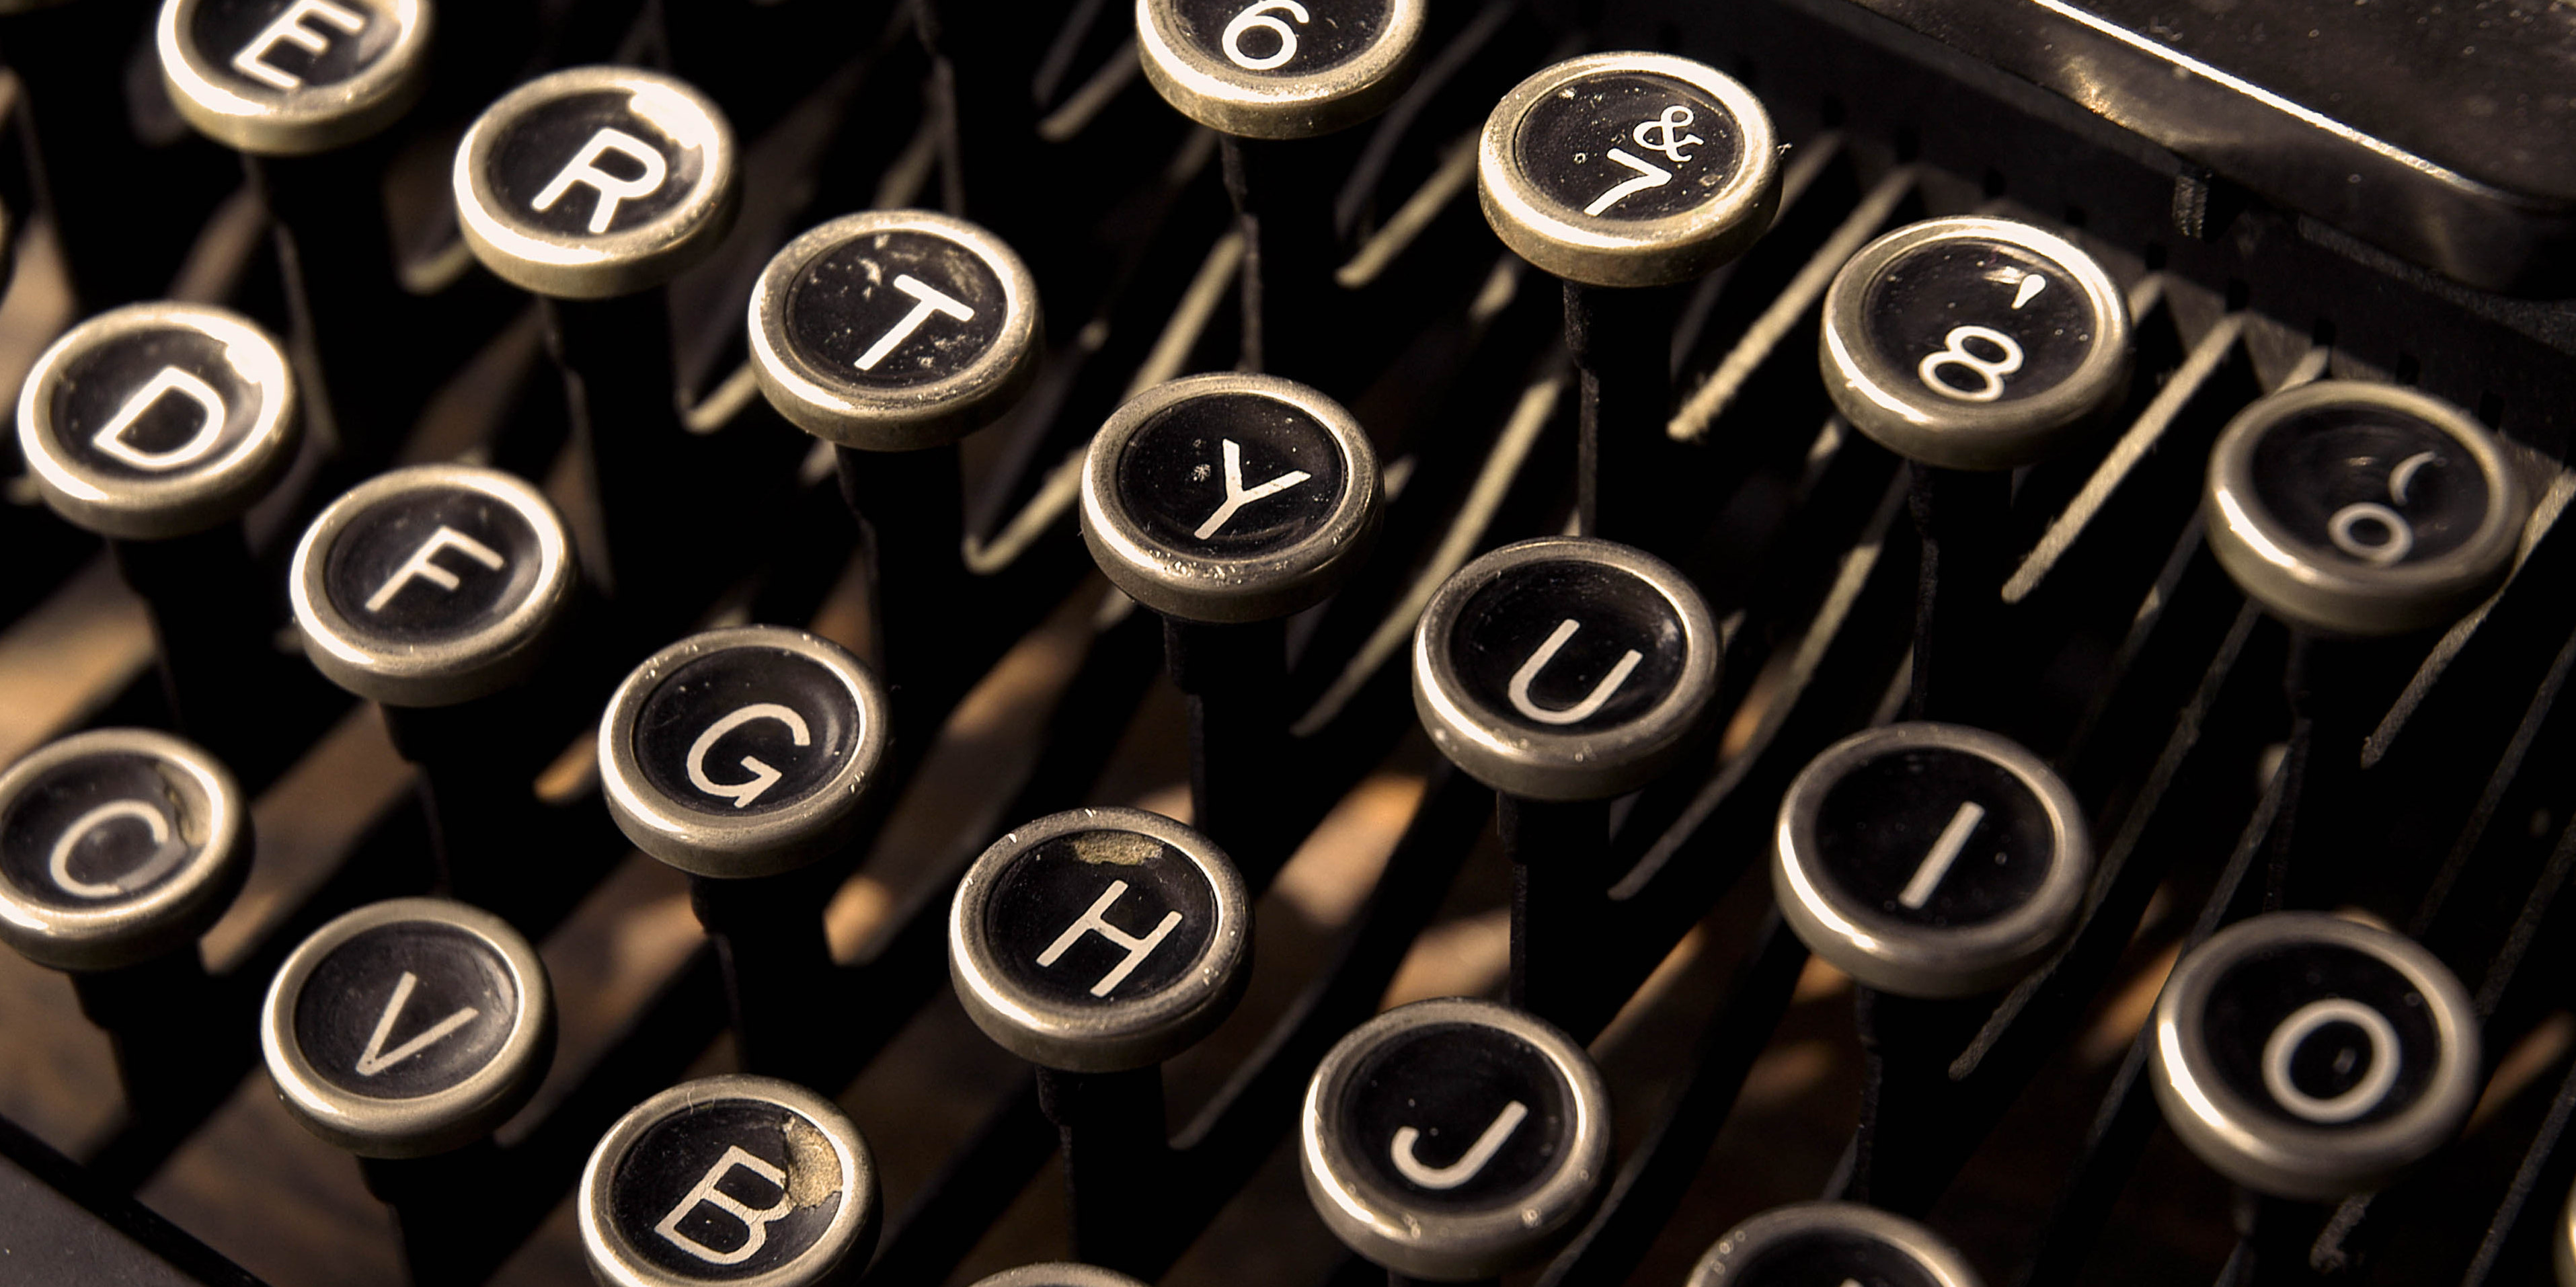 Old typewriter keys. ©Robin Nelson